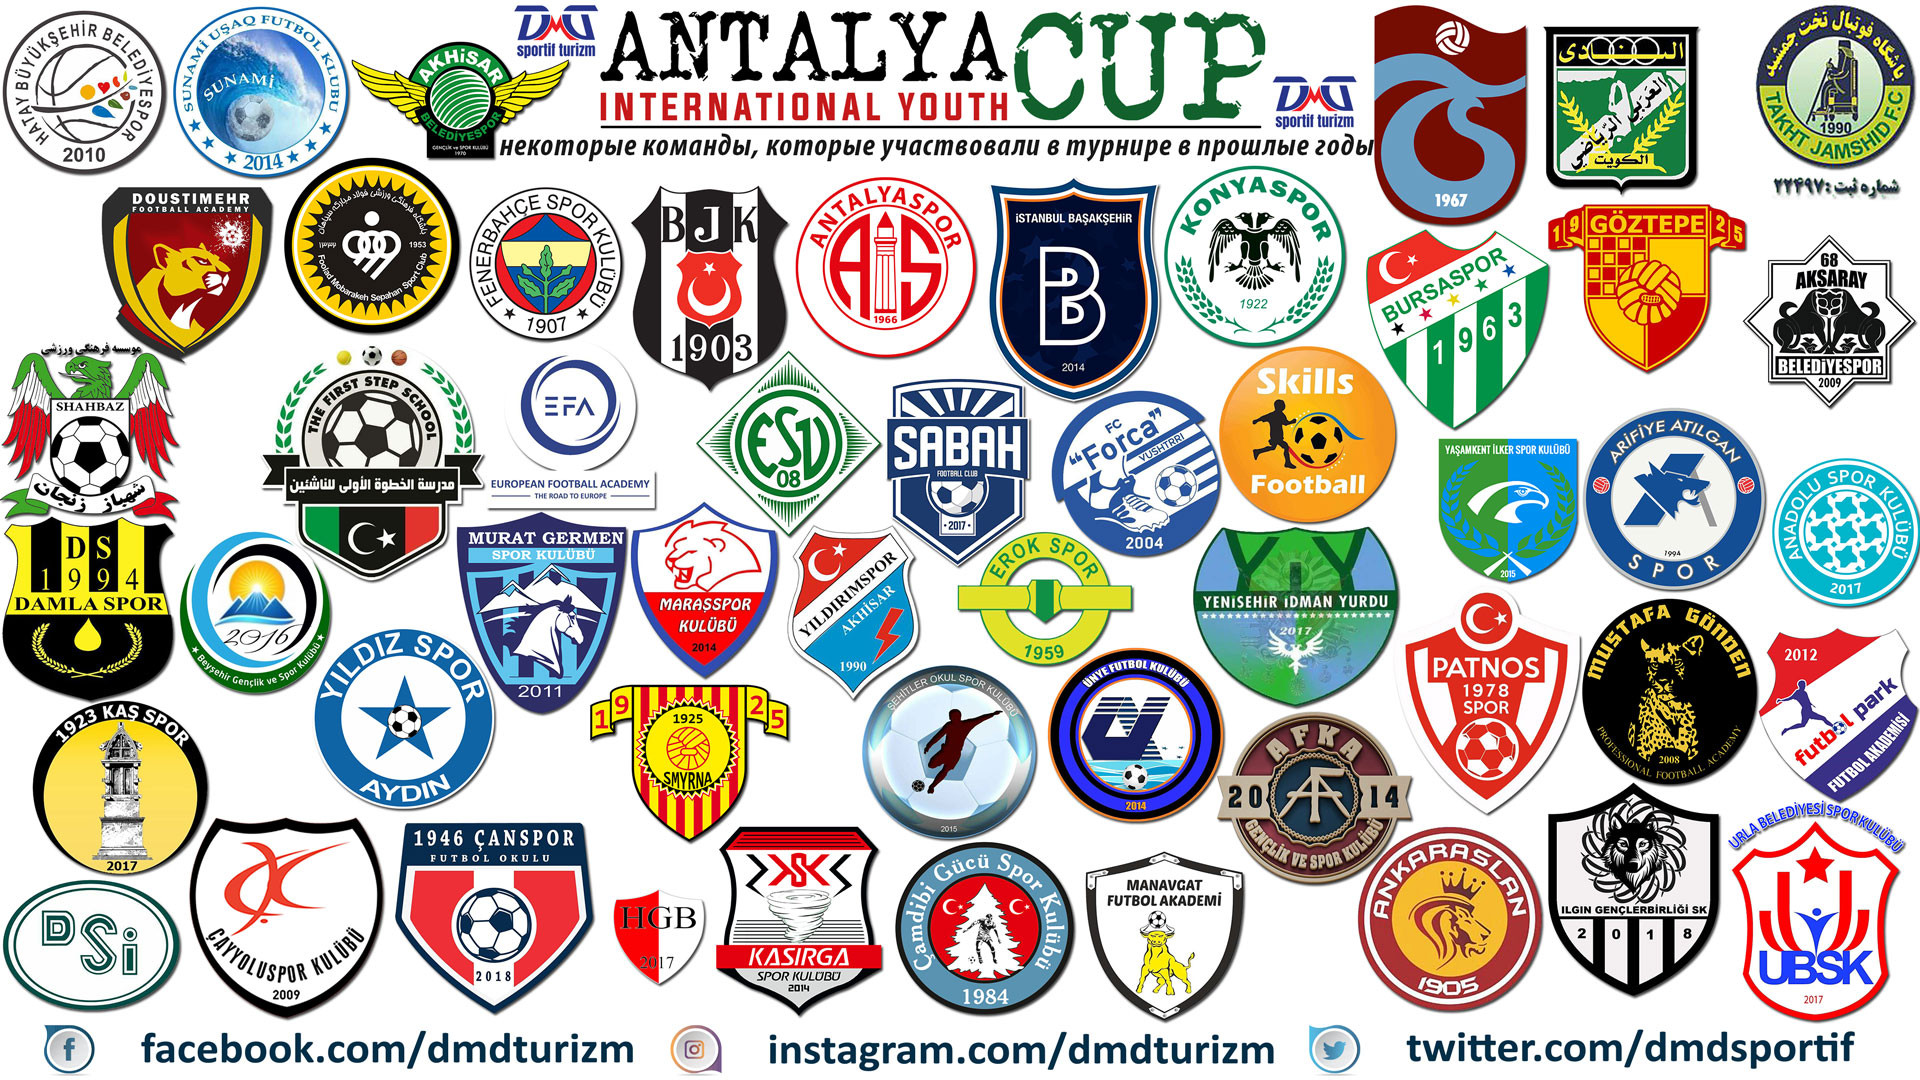 antalya-cup-log-mix-ru.jpg